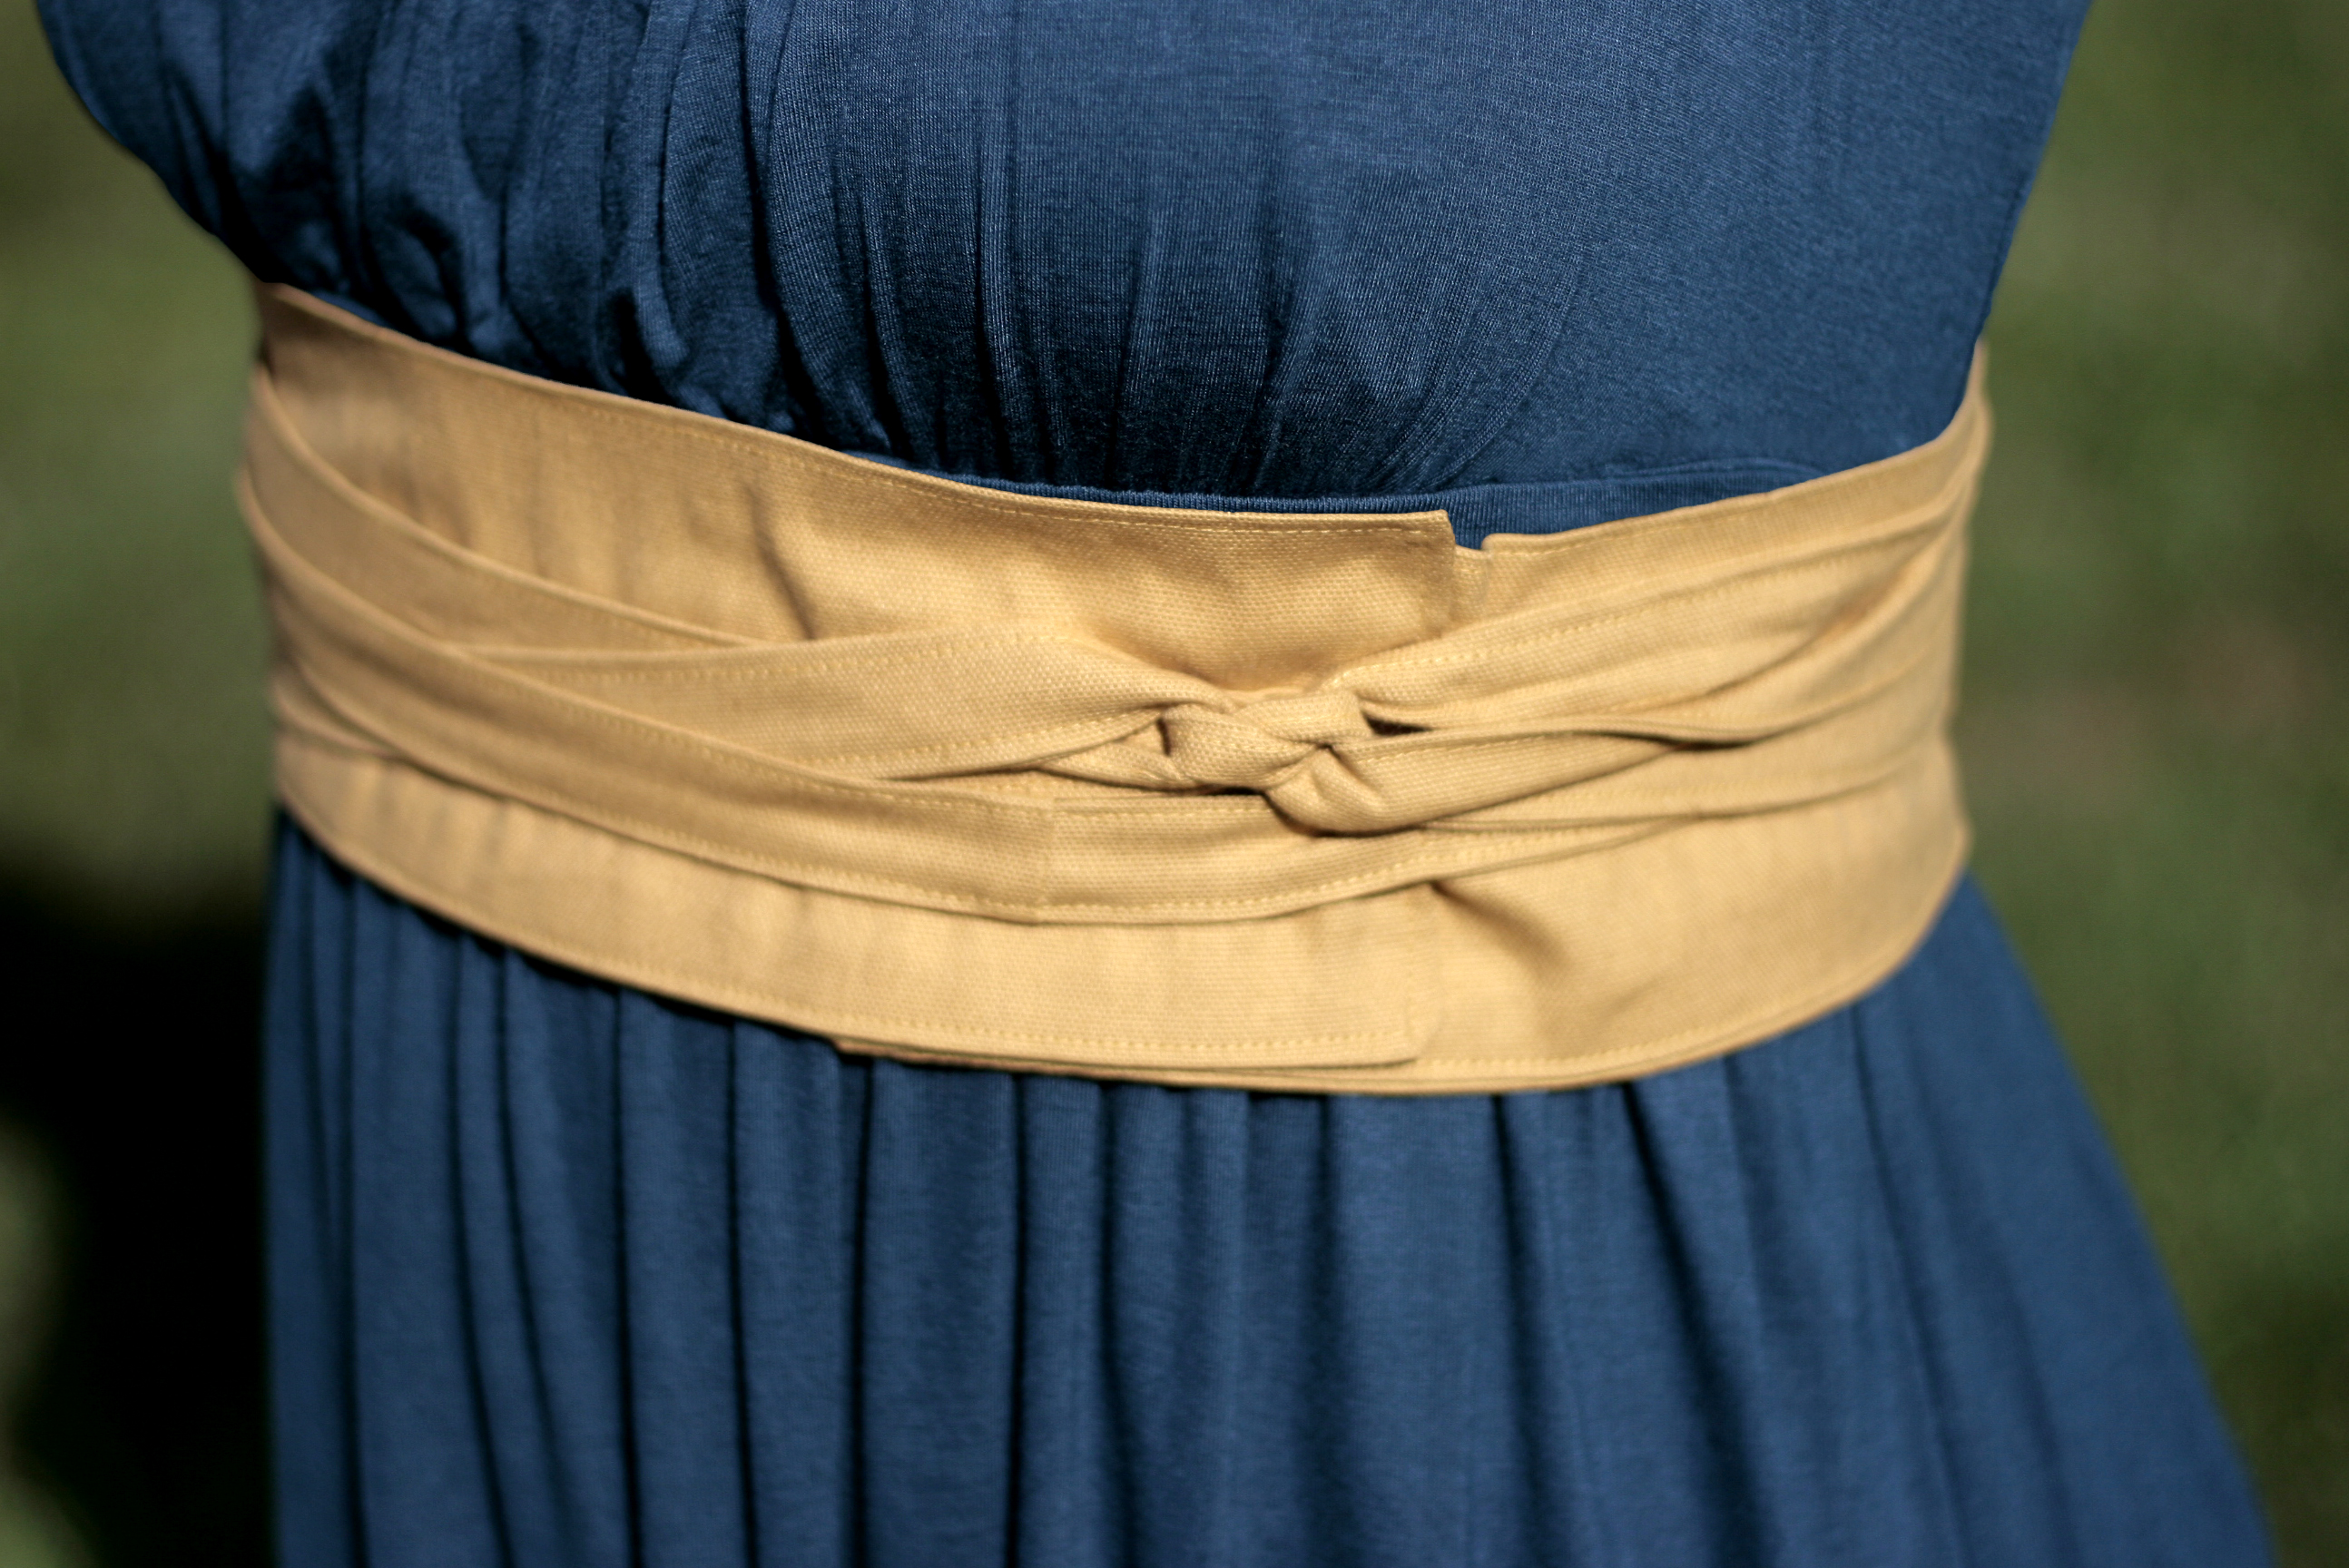 How to sew a belt